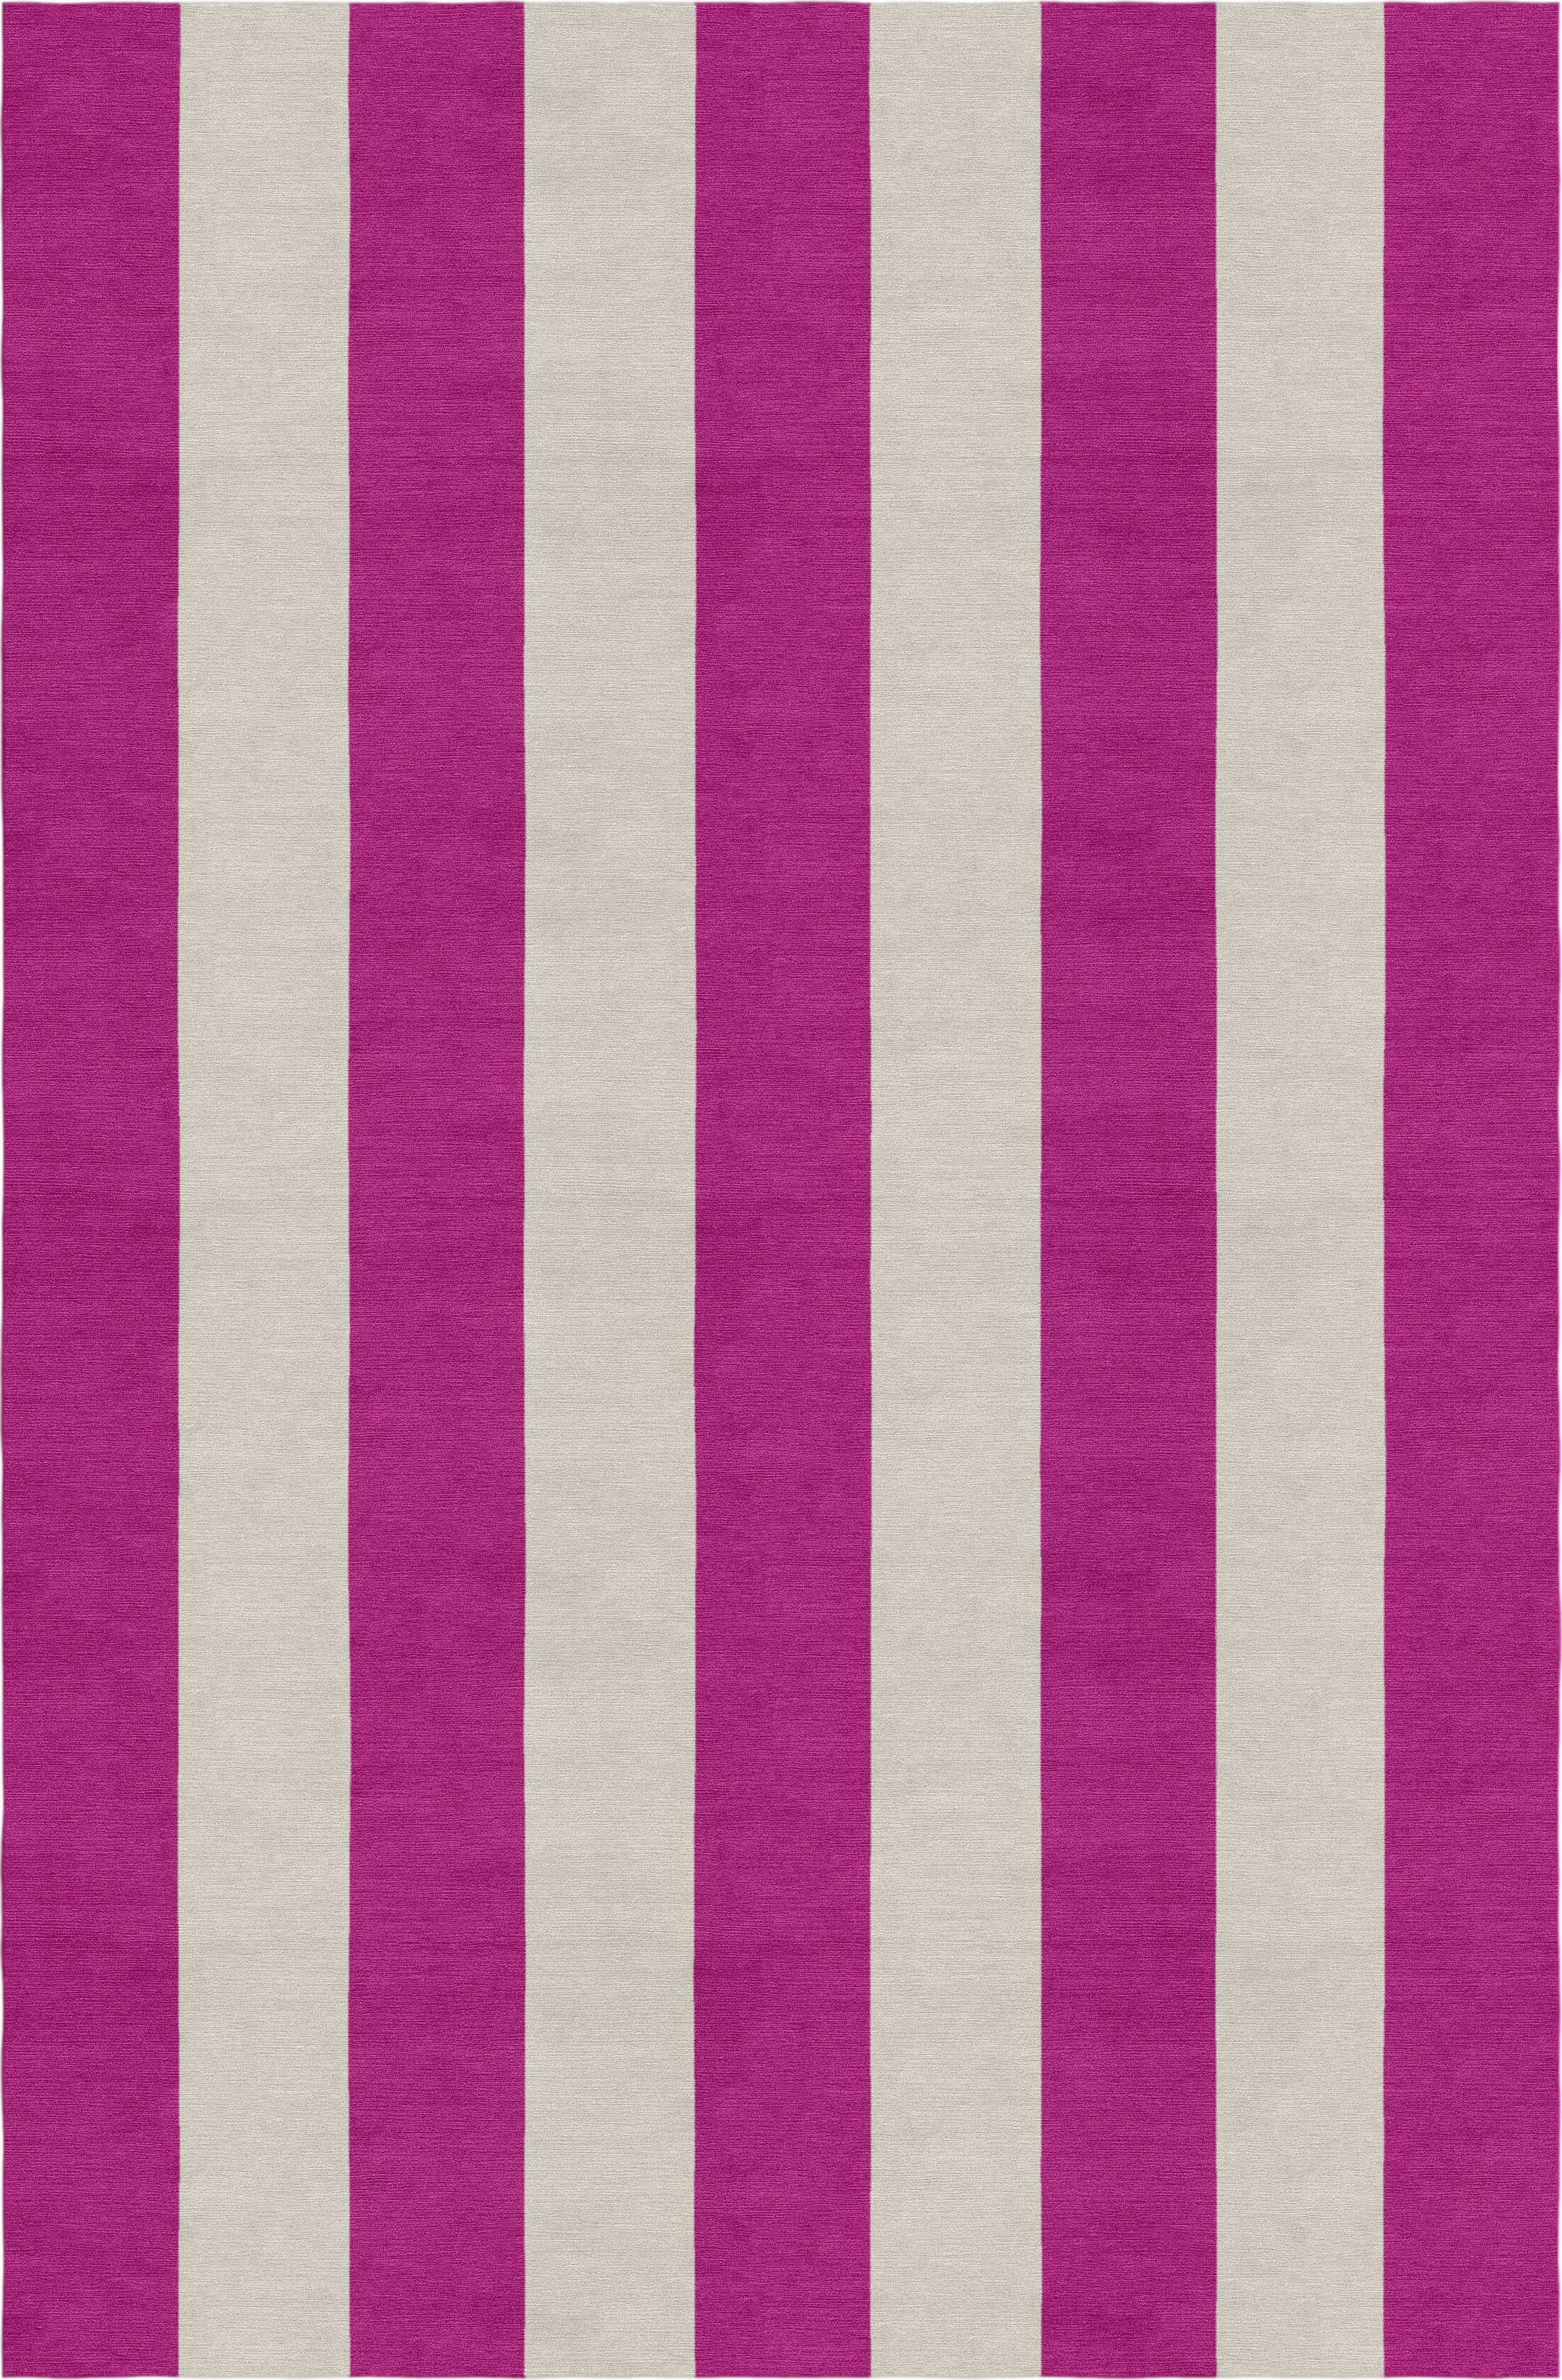 Claussen Stripe Hand-Woven Wool Silver/Magenta Area Rug Rug Size: Rectangle 5' X 8'